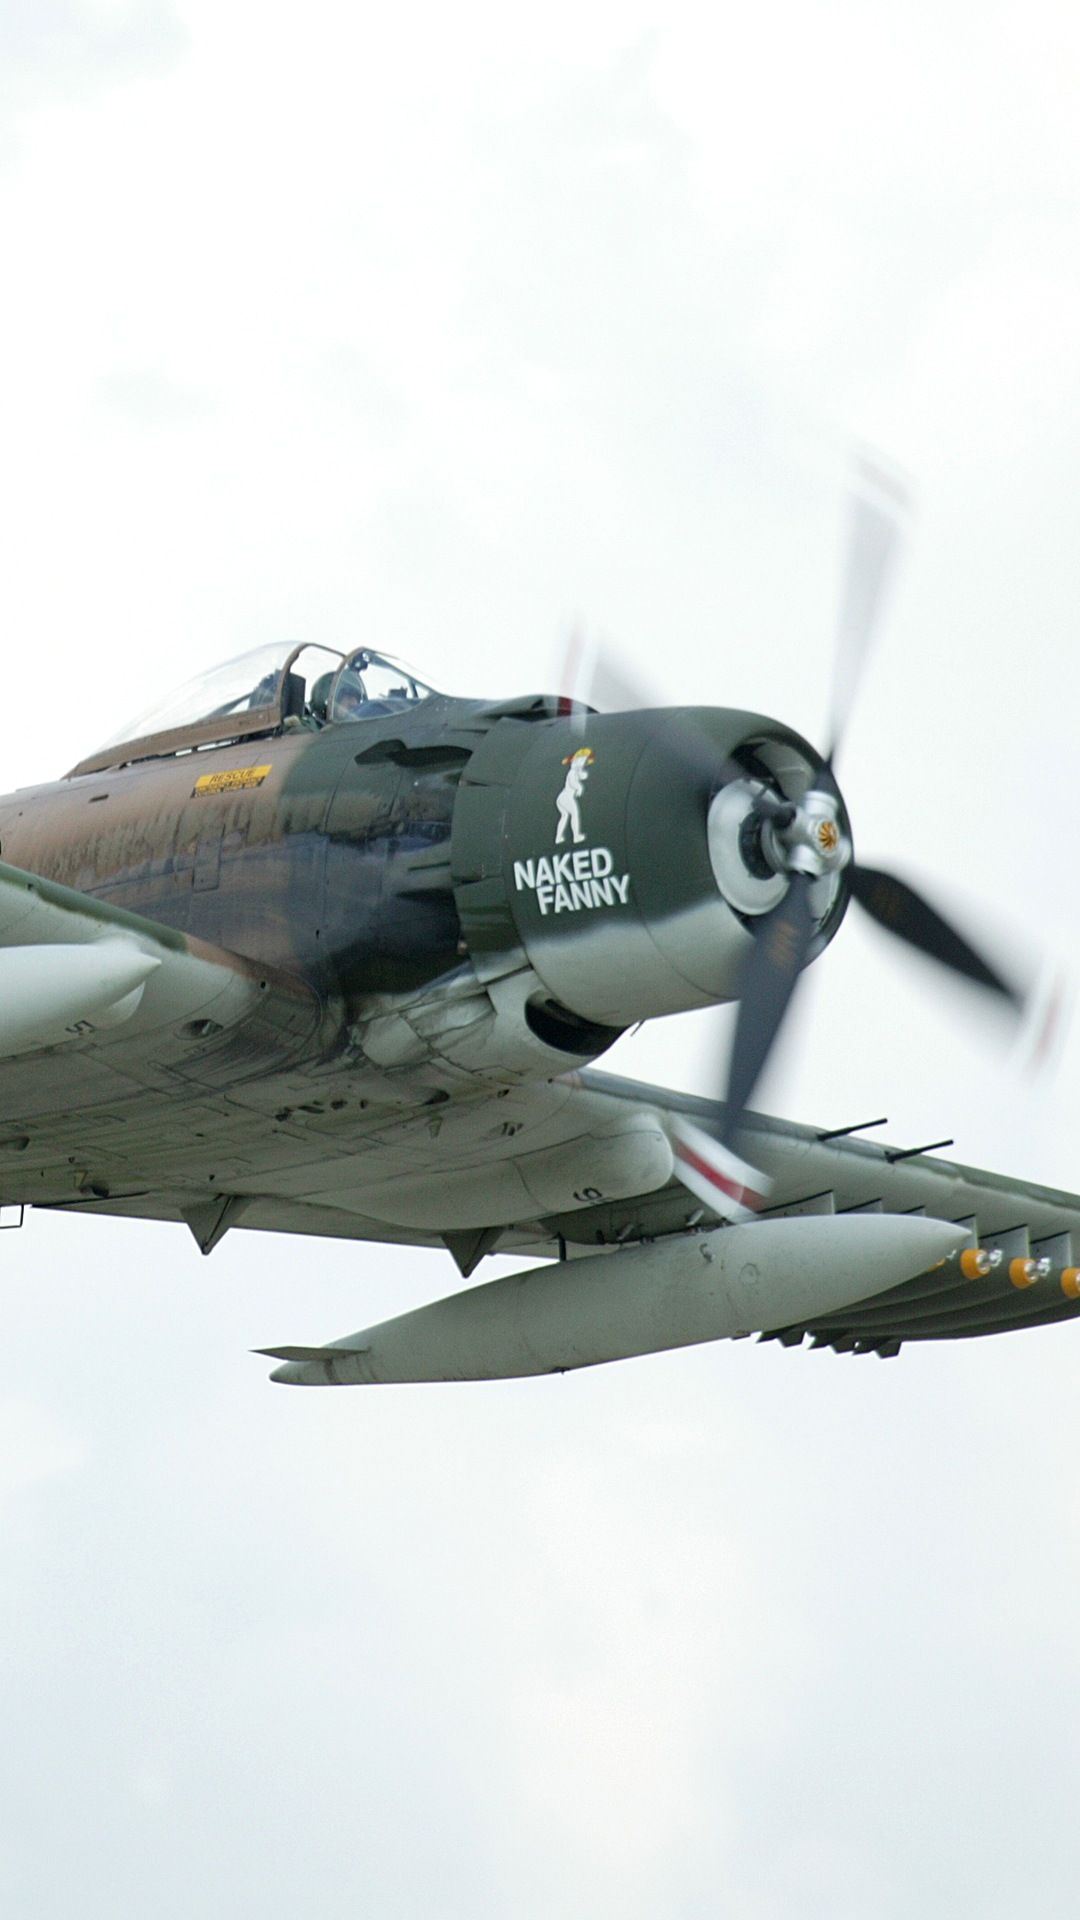 A1 Skyraider photographed at the Oshkosh airshow 2003 using a Canon 1Ds digital camera and Canon 100-400mm image stabilized lens set to 330mm  (1/500th second, f5.6, ISO 160)